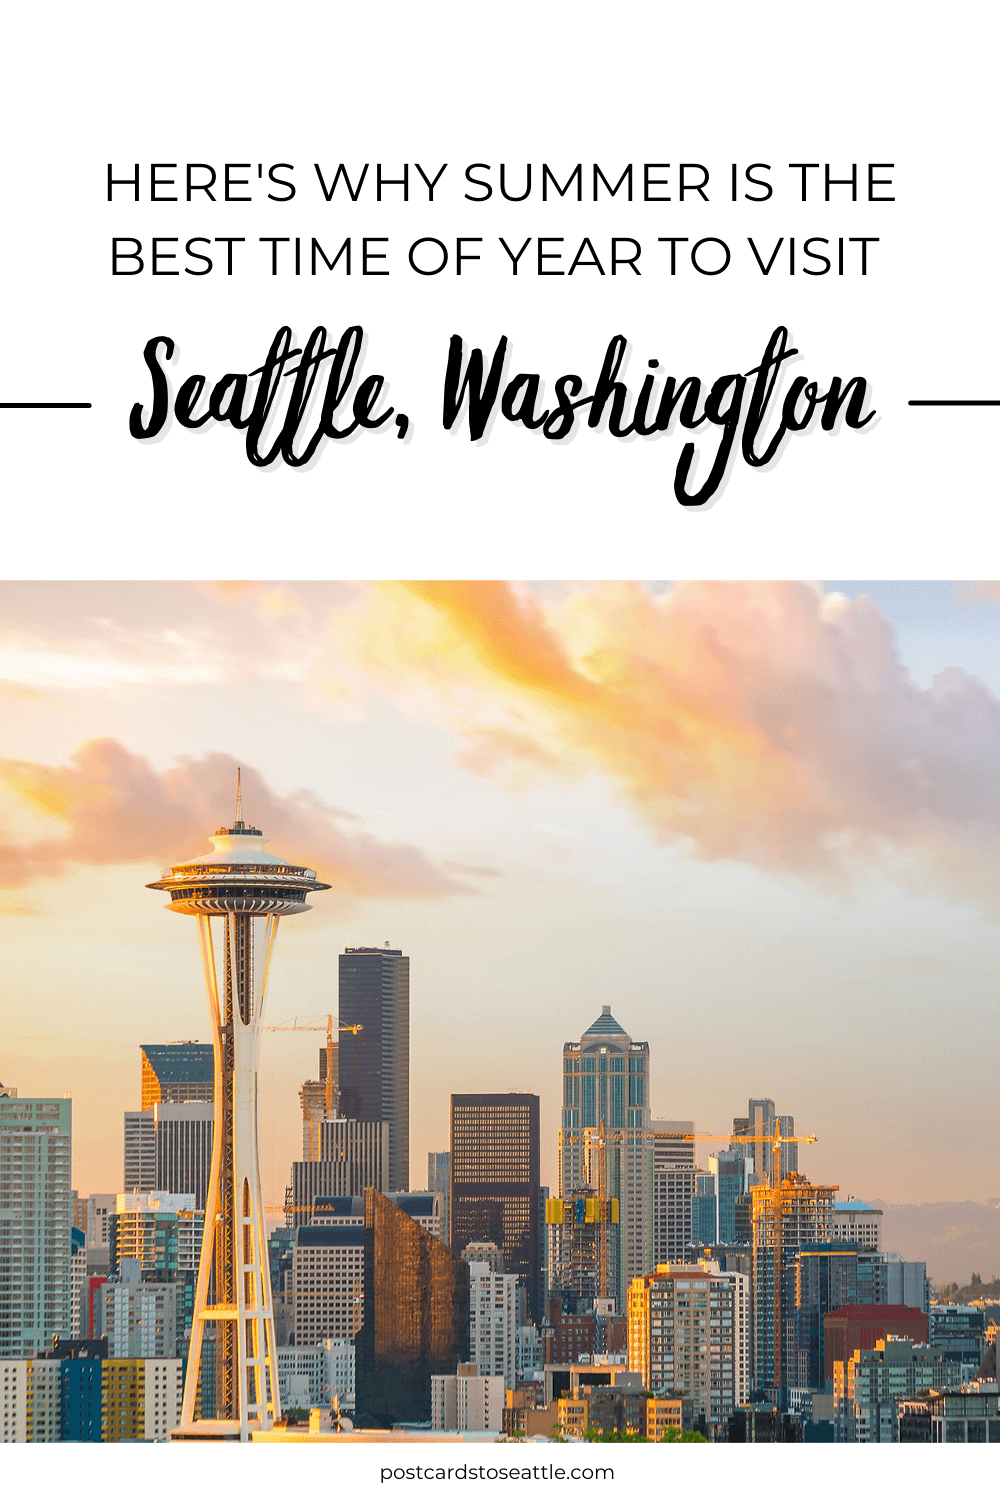 17 Reasons to Visit Seattle in the Summer